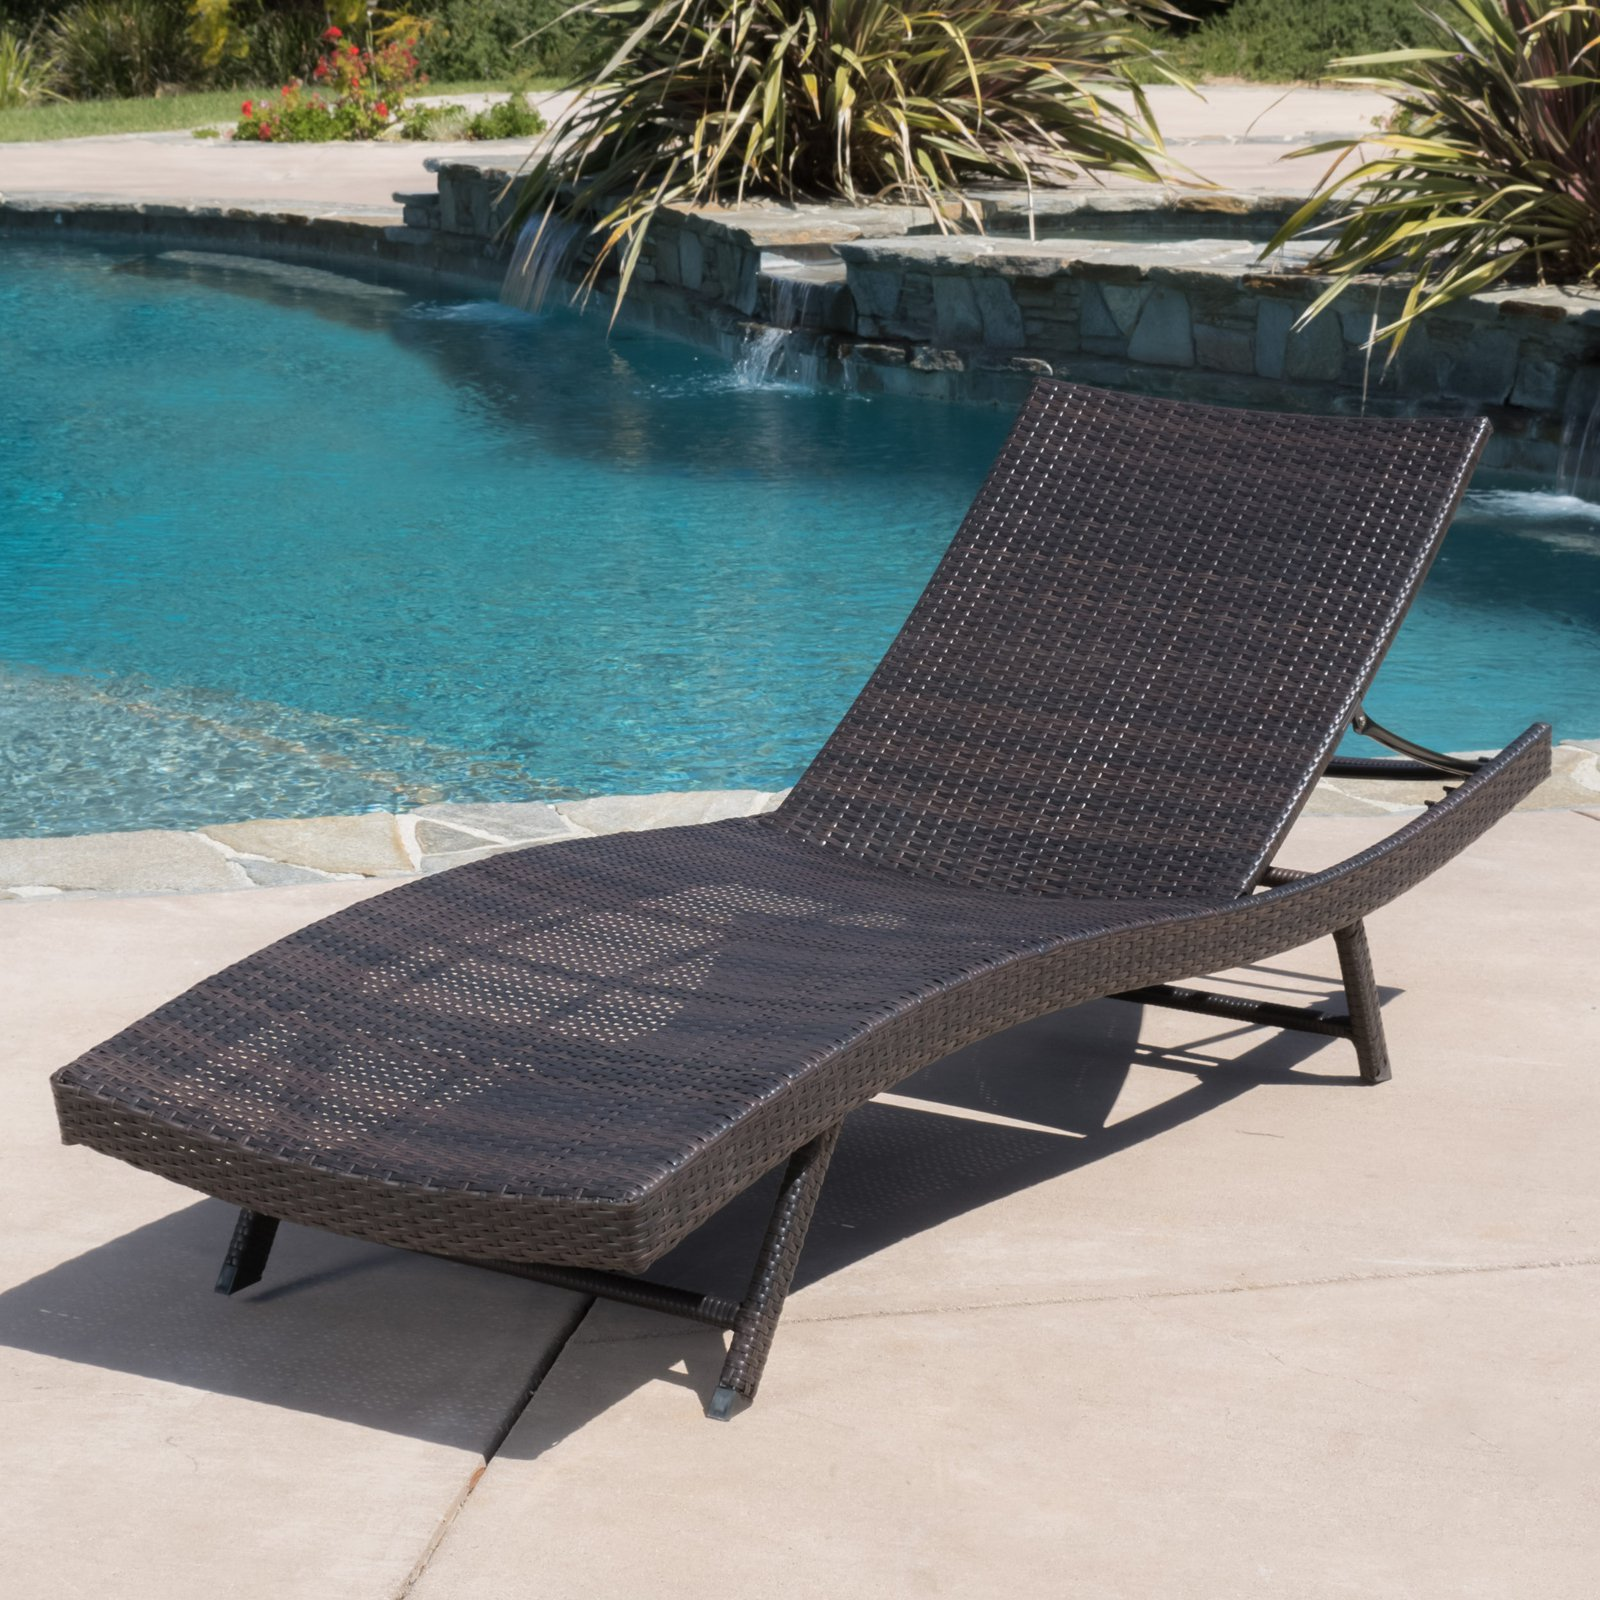 Kauai Wicker Patio Chaise Lounge